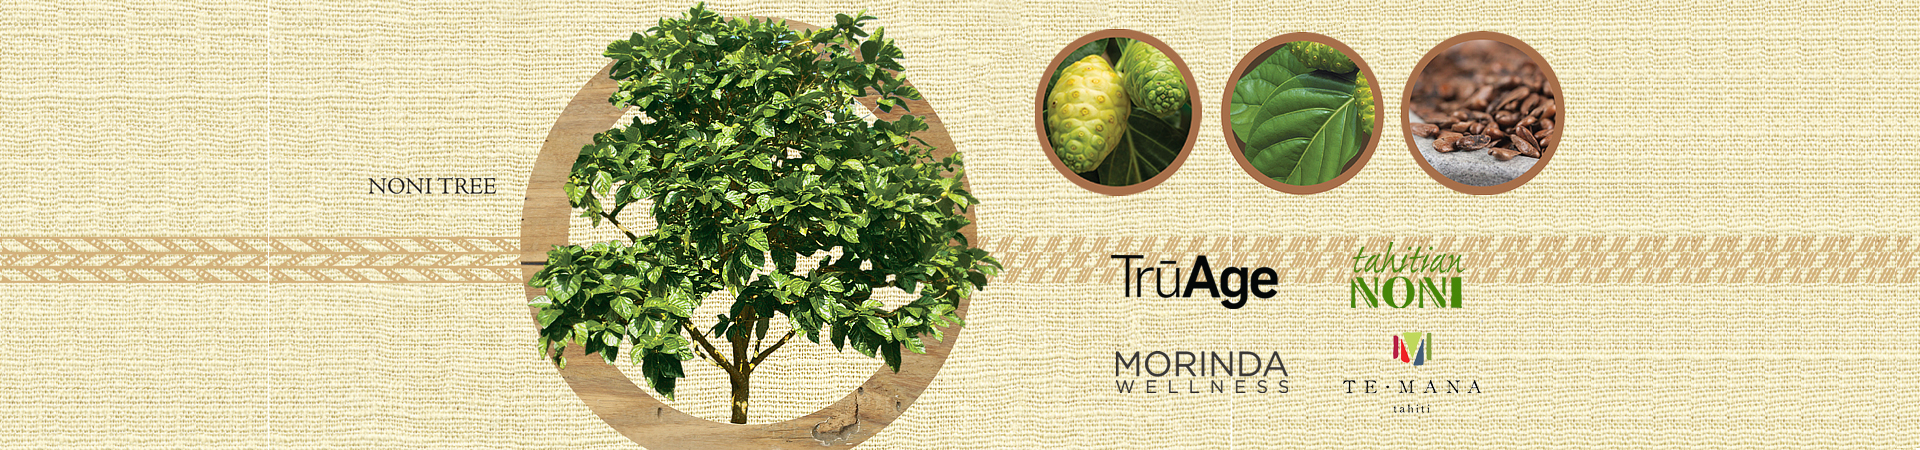 Noni Tree - hidden